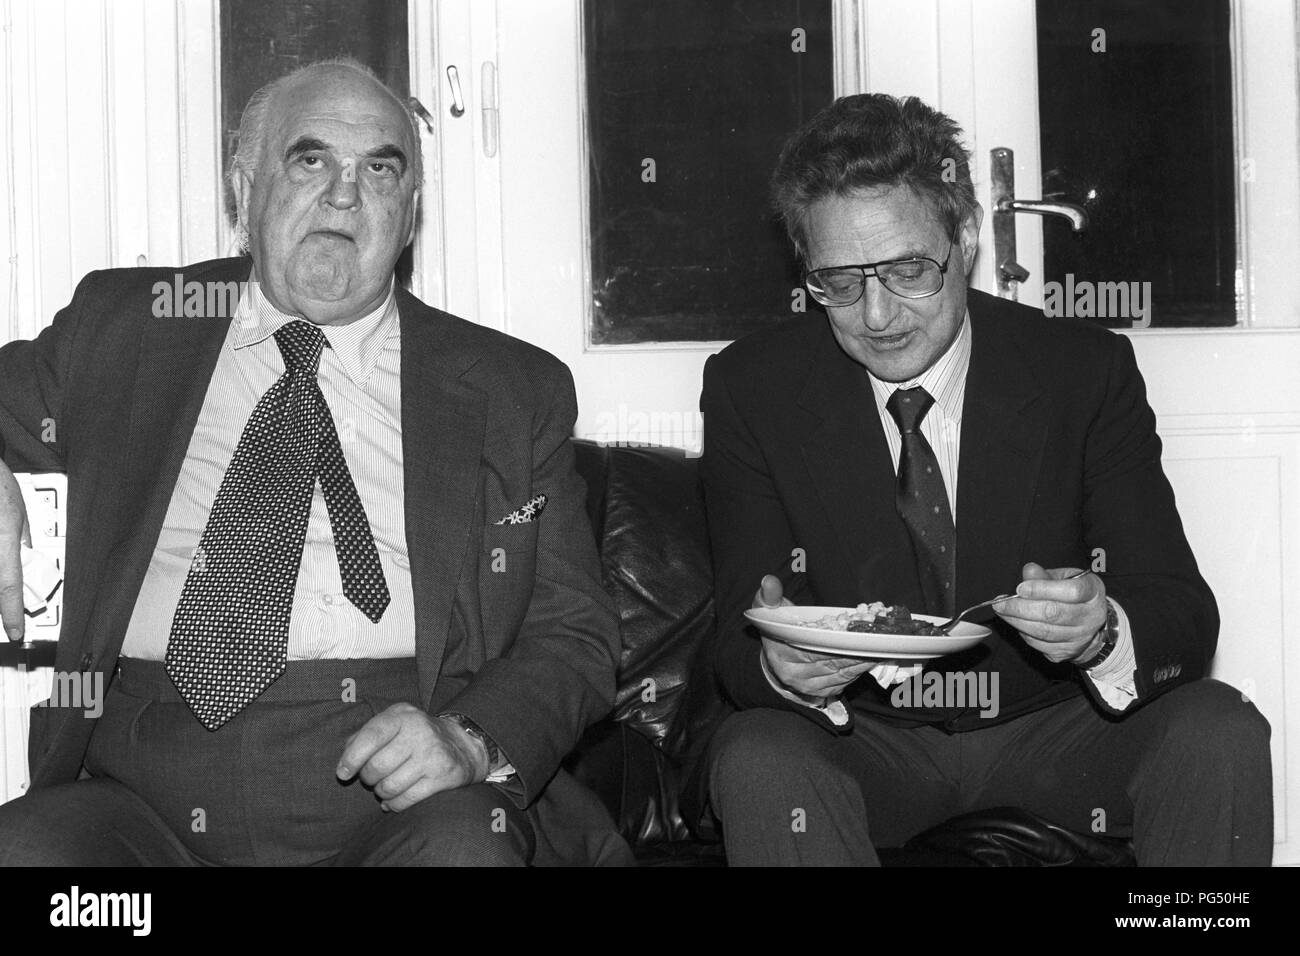 Lord George Weidenfeld (left) and George Soros at a meeting of the IWM (Institut fuer die Wissenschaft vom Menschen, English: Institute for Human Sciences) in Vienna. Weidenfeld was a journalist and adviser to the Israeli government. Soros appeared particularly as an investor. Stock Photo